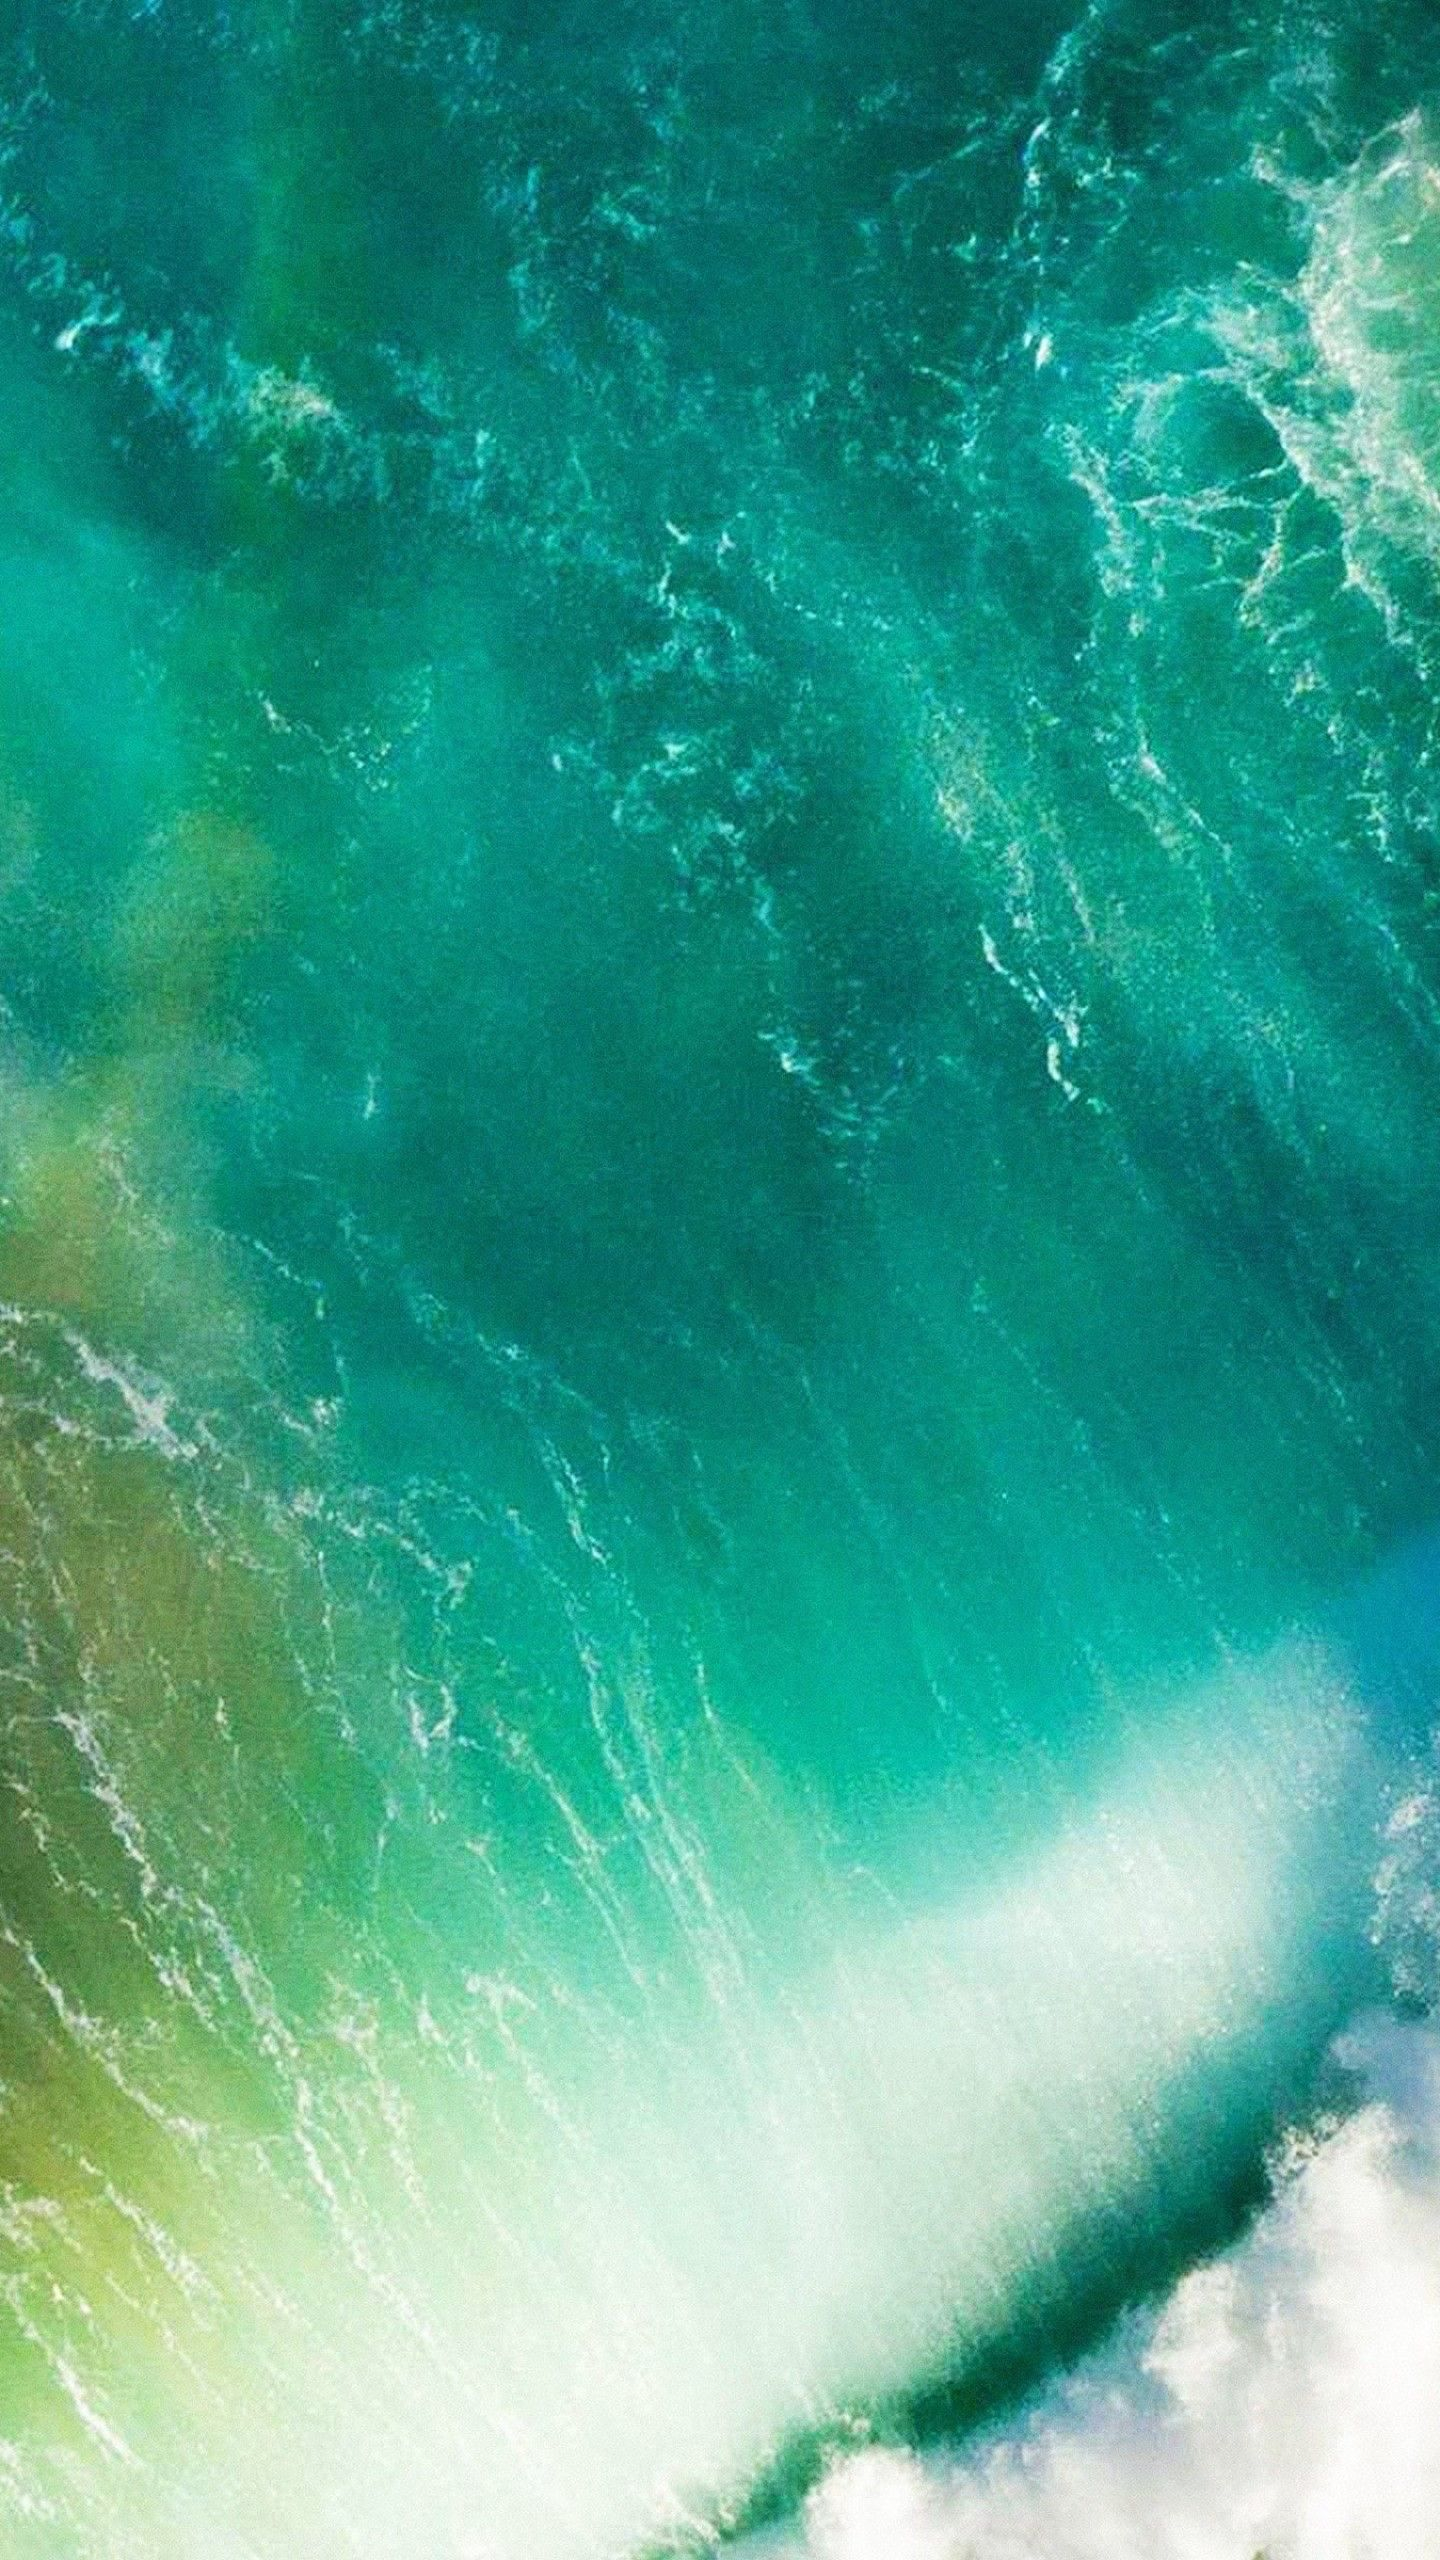 Free Download Iphone Ios 10 Wallpapers Top Iphone Ios 10